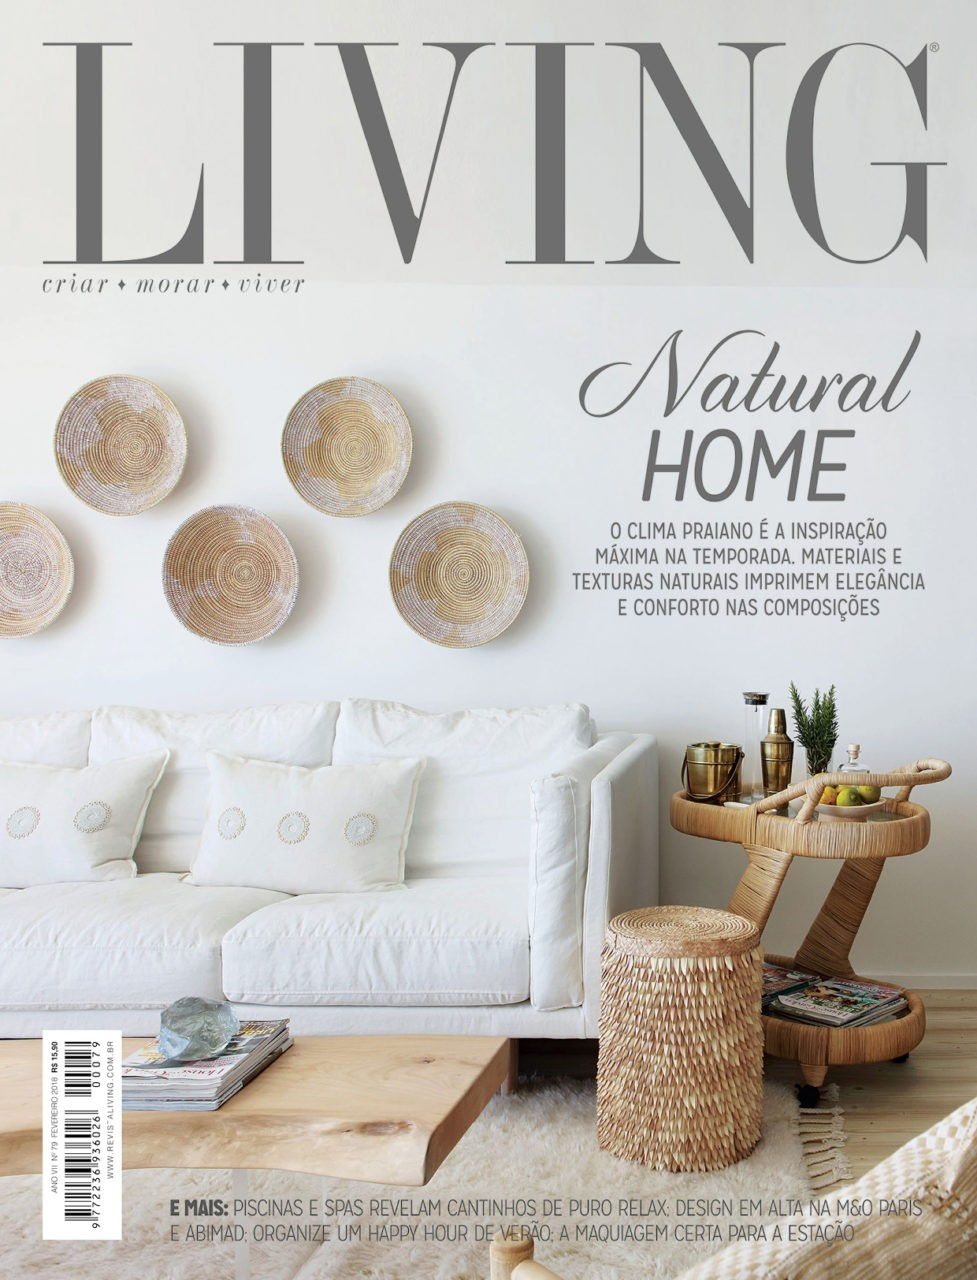 https://www.saota.com/wp-content/uploads/2019/04/2018_02_01_SAOTA_BR_RevistaLiving_Cover_.jpg